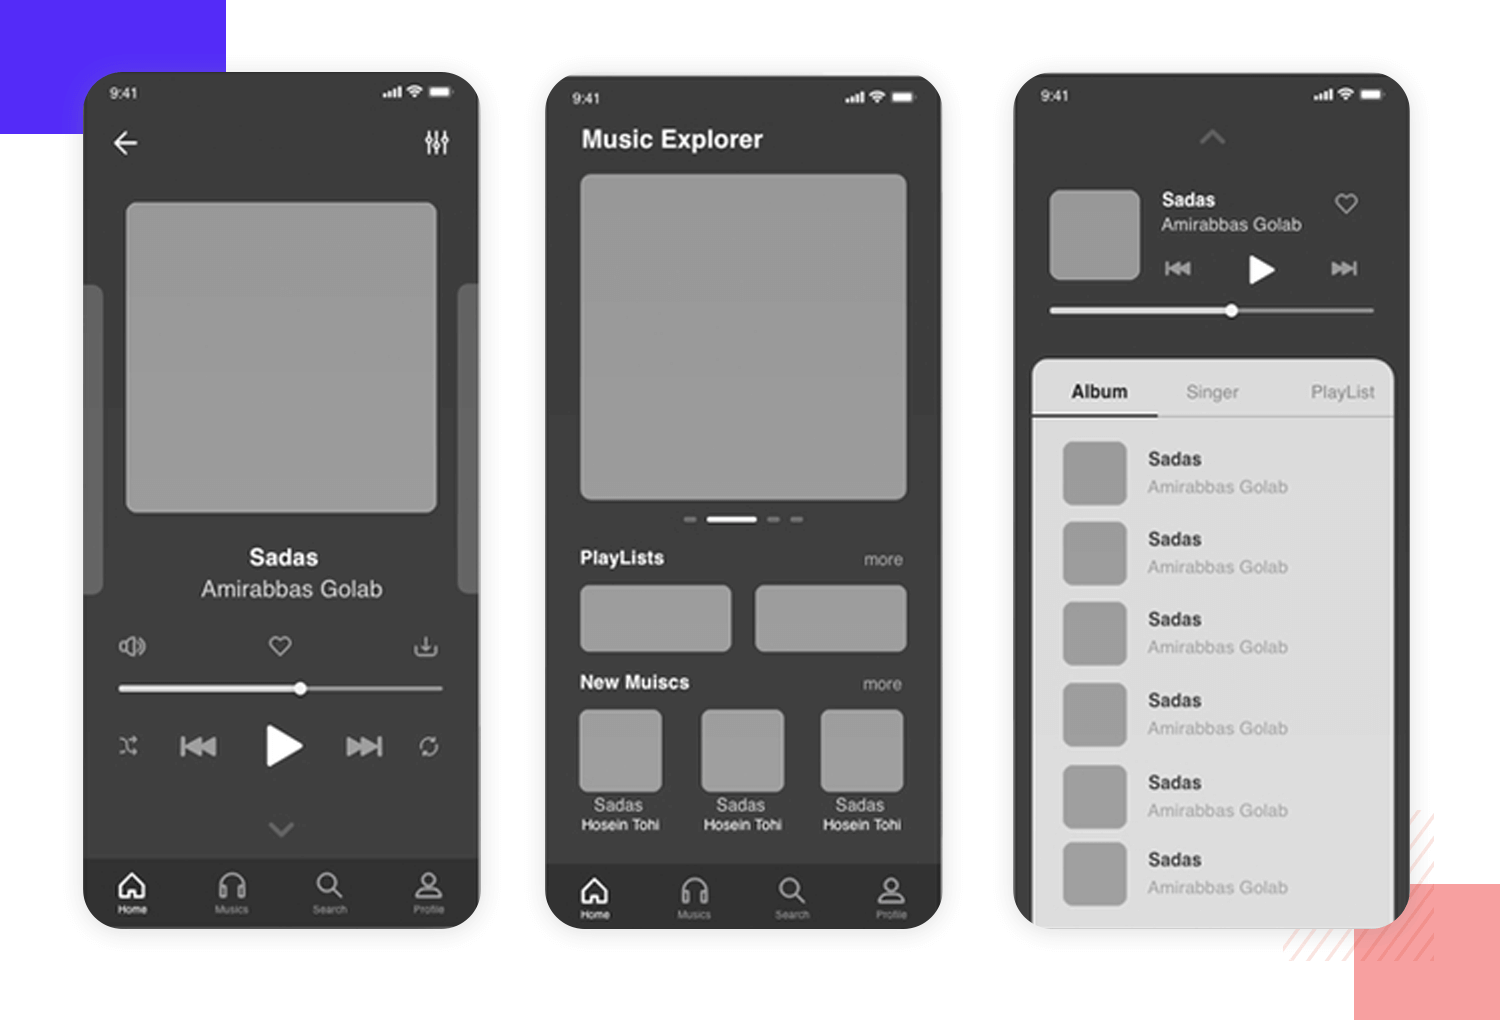 mobile app wireframe example - music explorer